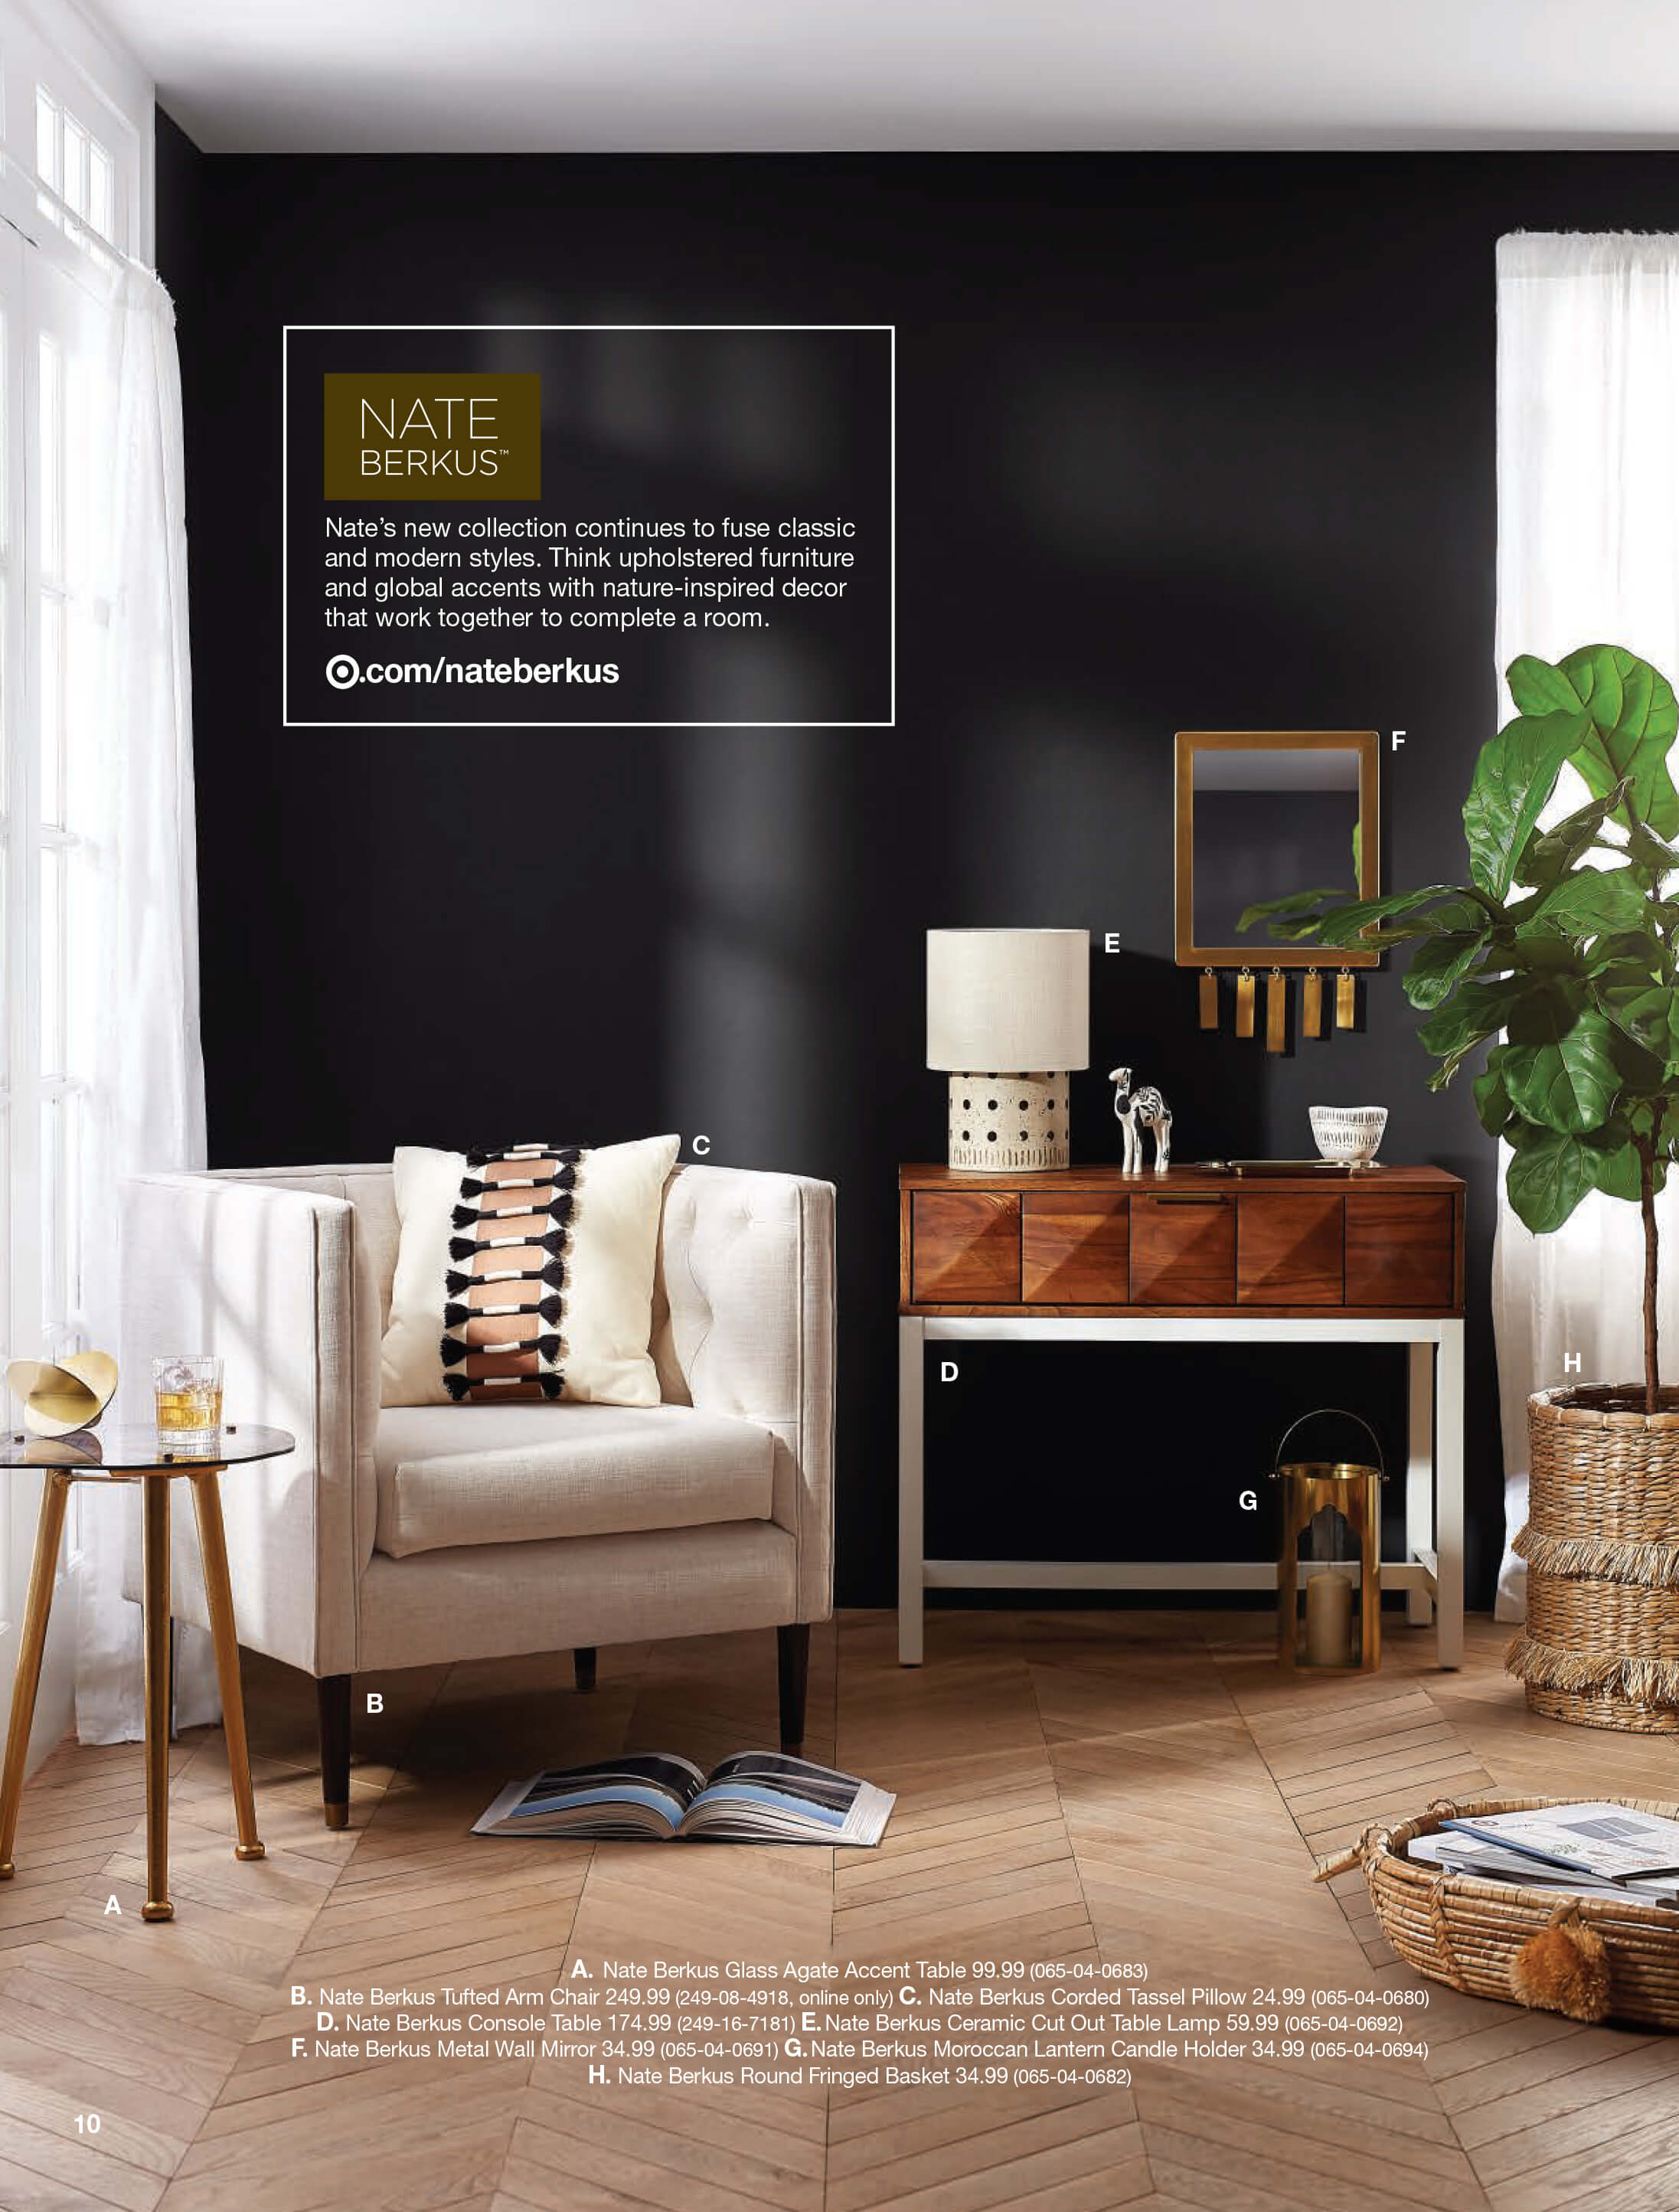 new target home product and emily henderson first look spring catalog cast metal accent table nate berkus small oak telephone garden settings bunnings teak seashell lamp offset